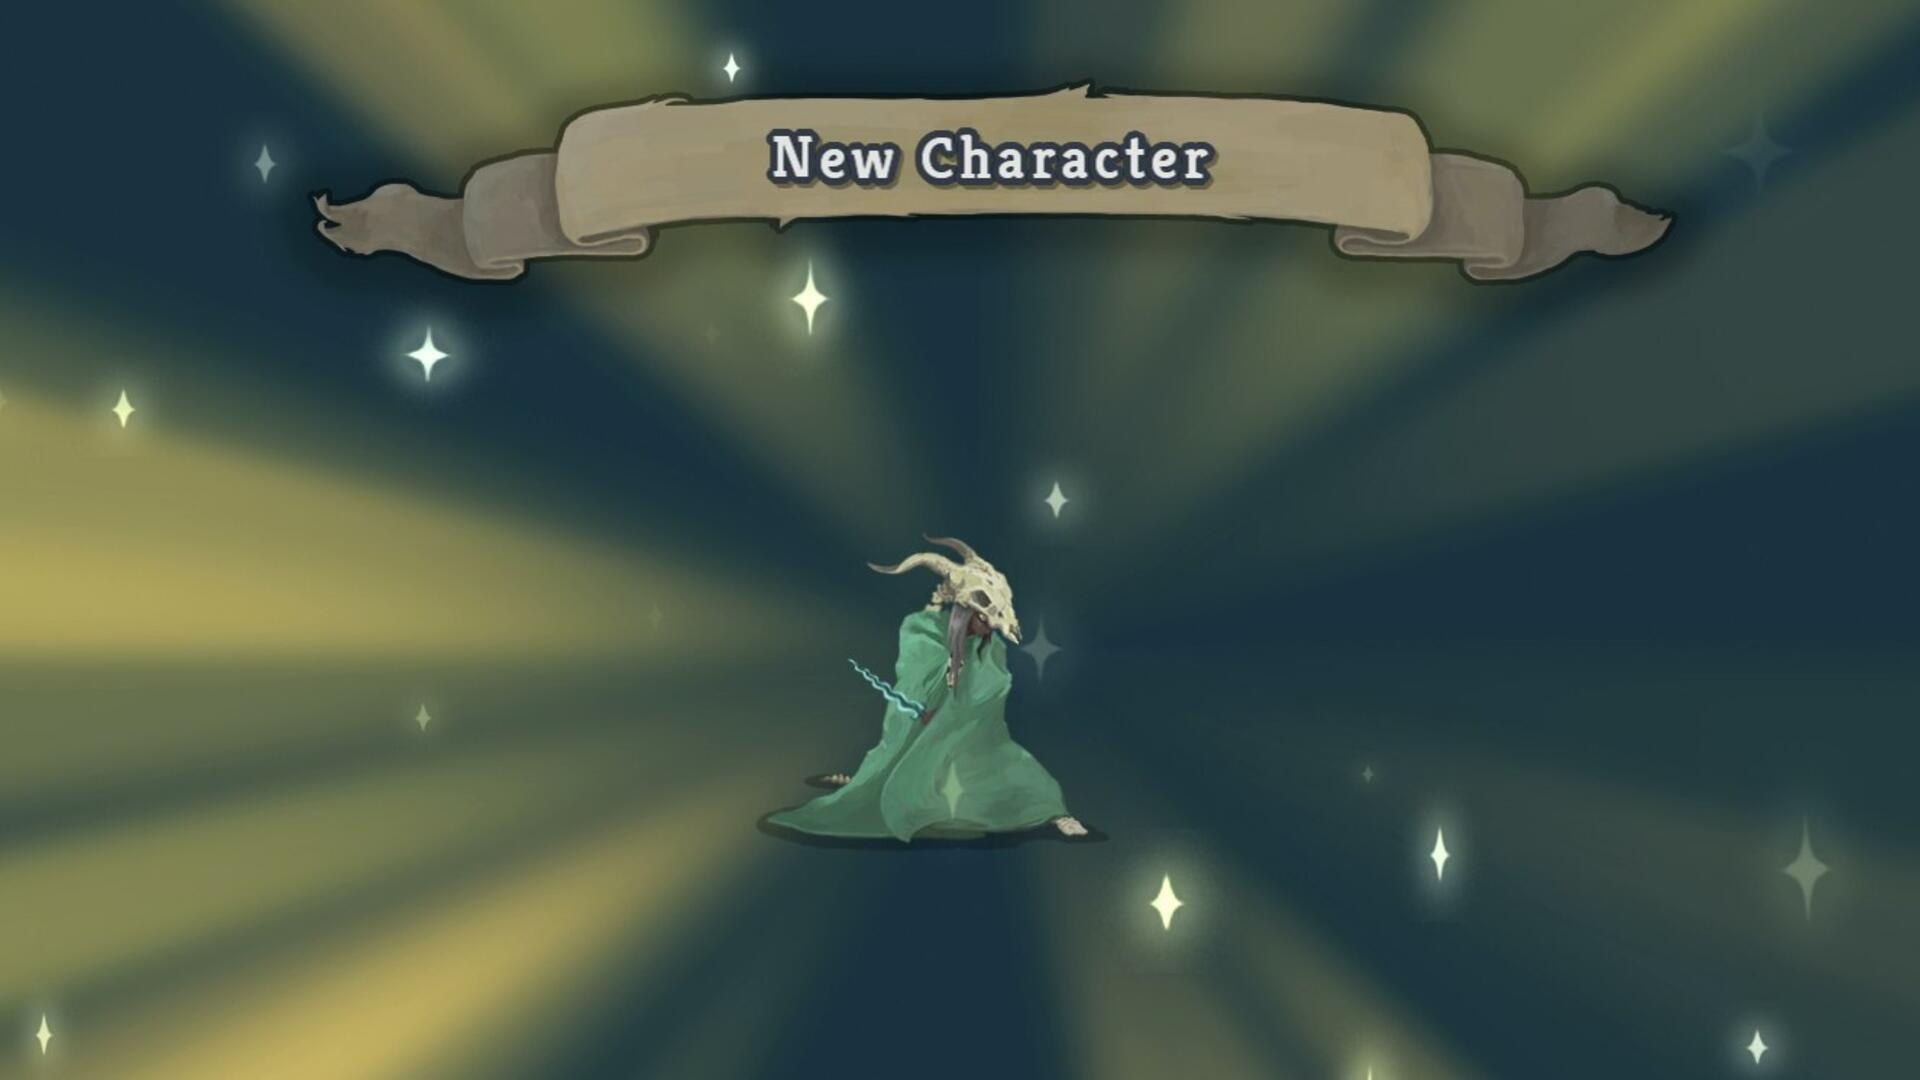 Slay the Spire Characters - How to Unlock New Characters in Slay the Spire